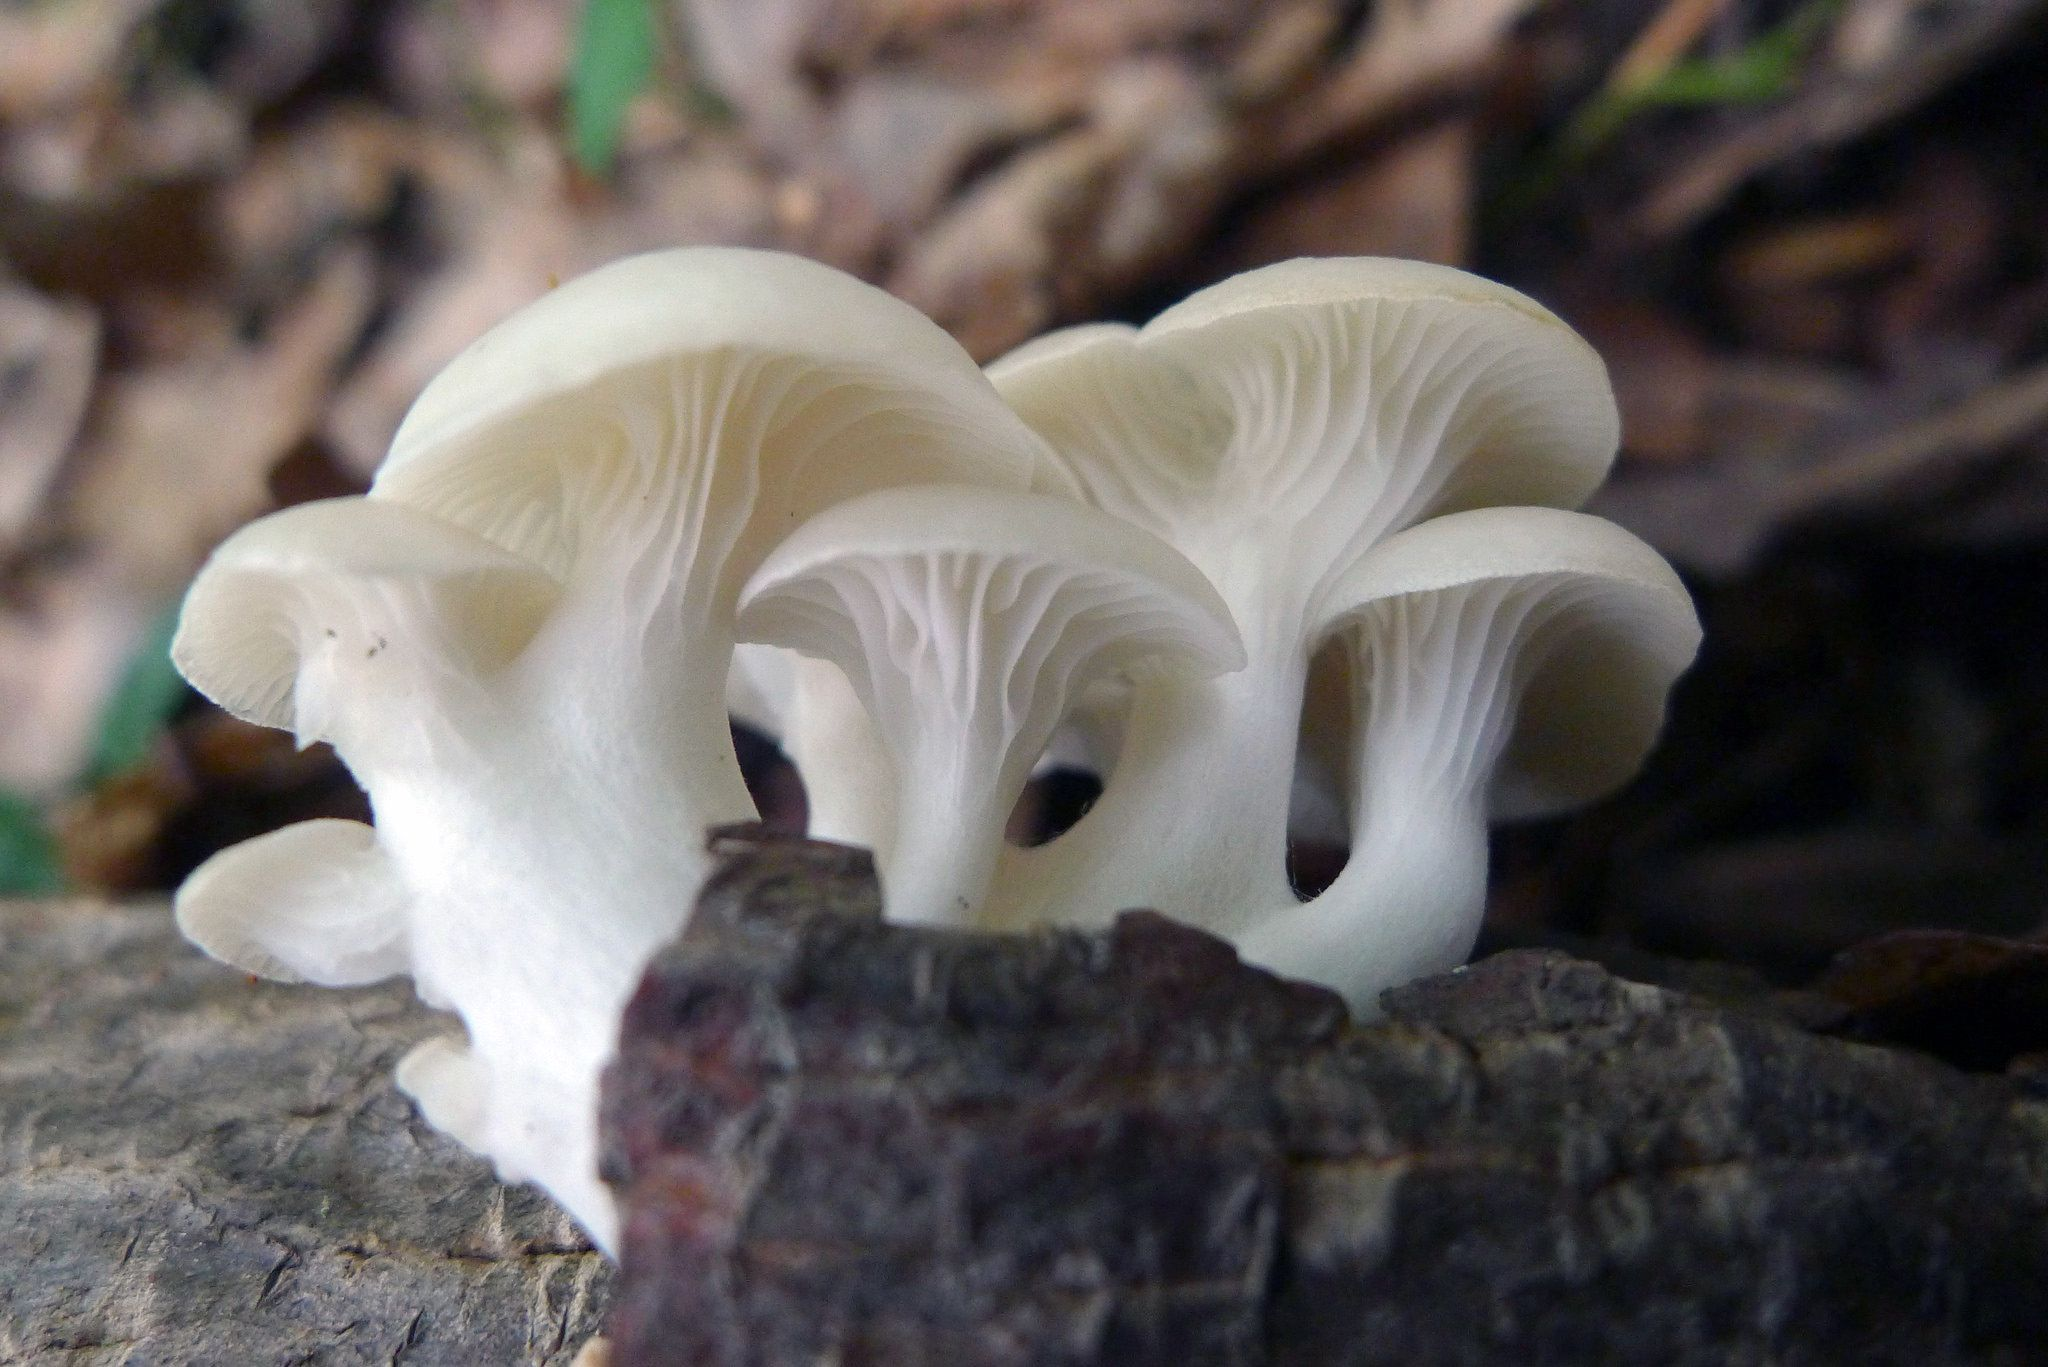 View looking up under the gilled caps of a cluster of six white mushrooms.